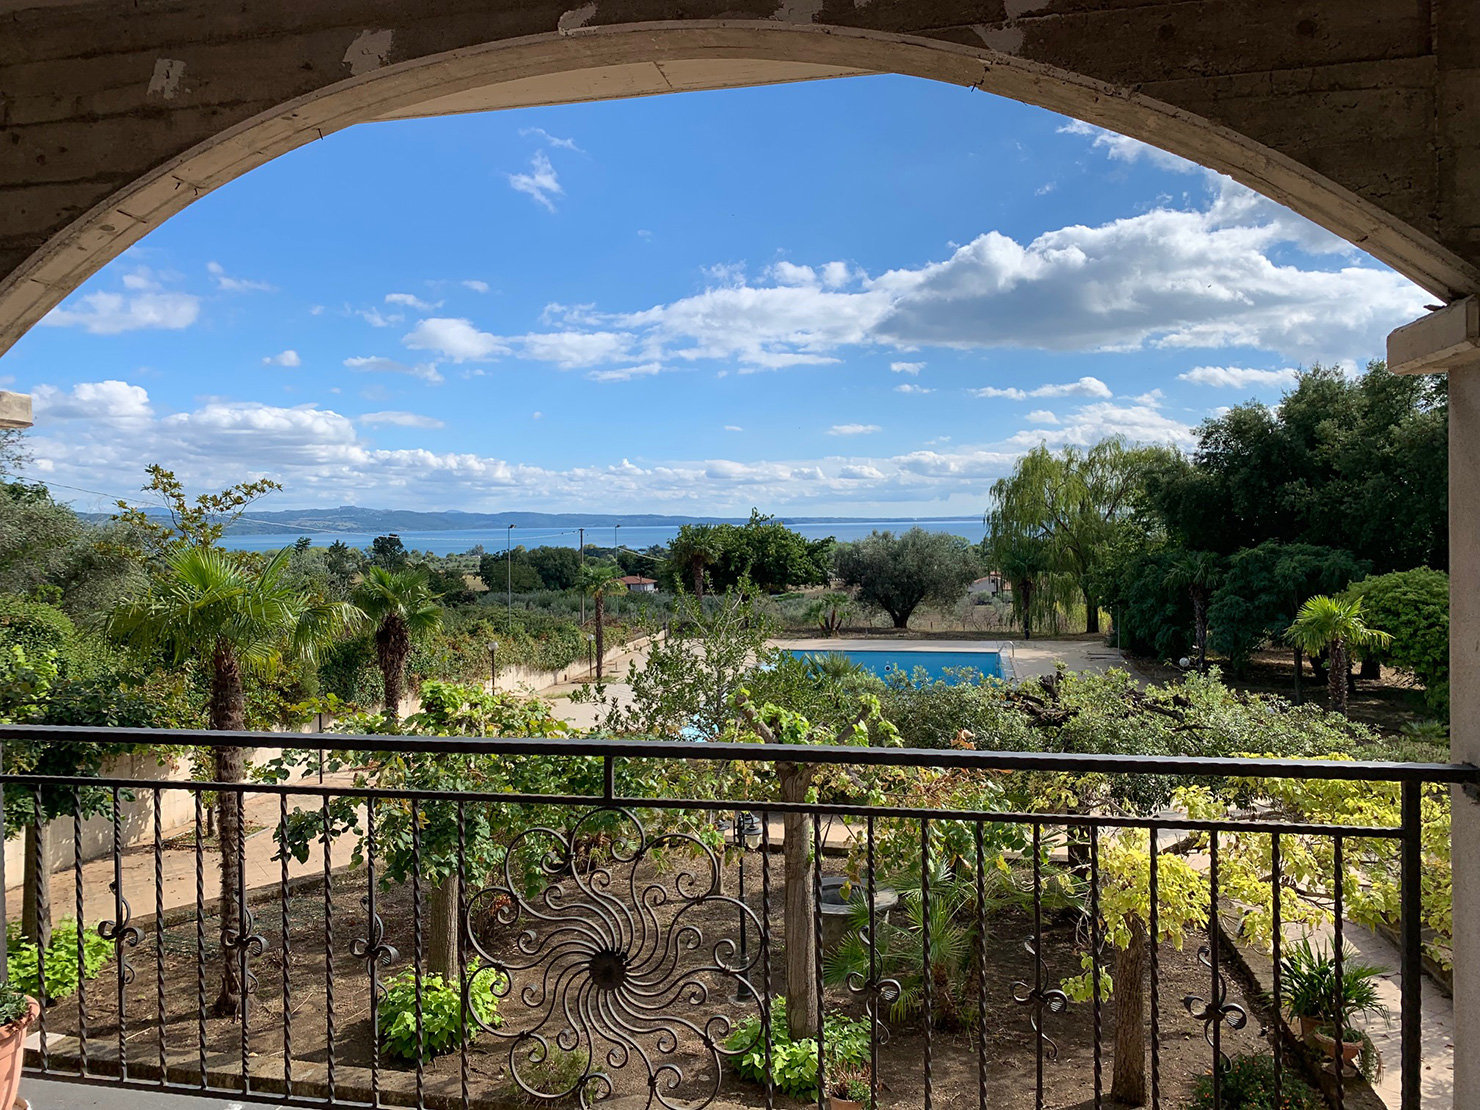 Villa with fabulous views over Lake Bolsena